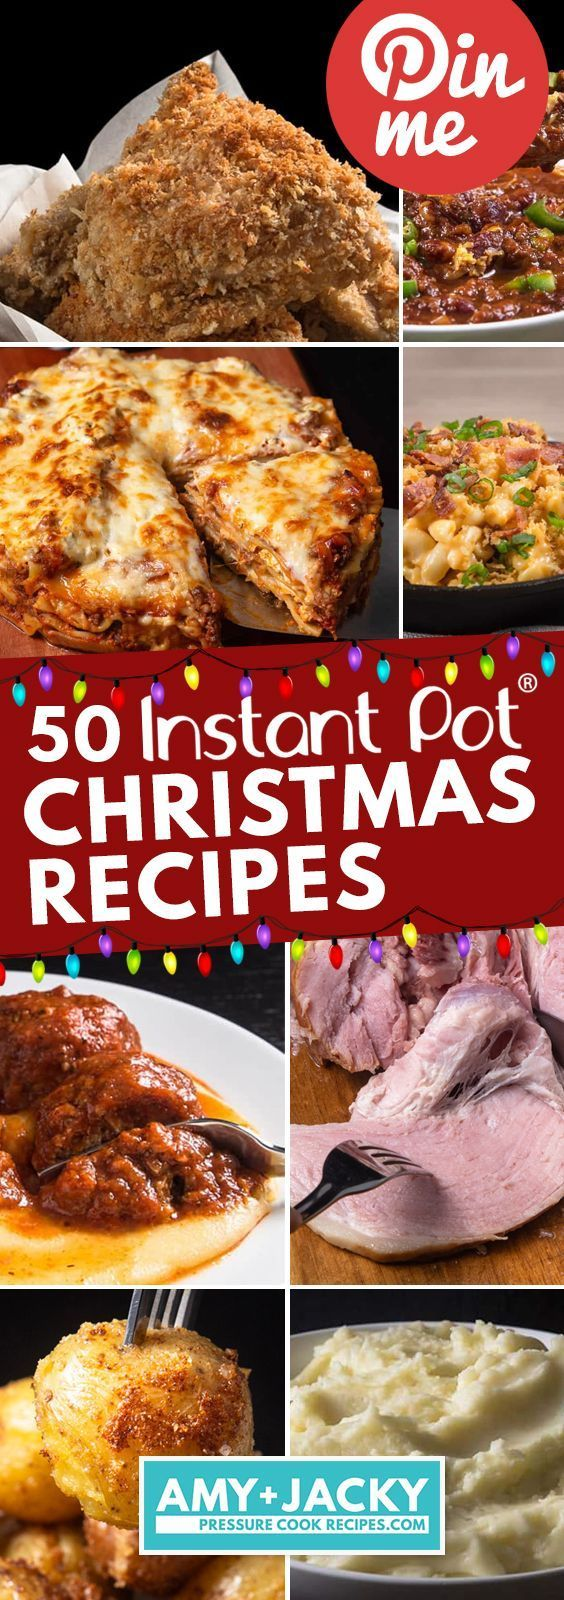 Instapot Christmas 2020 50 Instant Pot Christmas Recipes Your Family Will Love | Tested by